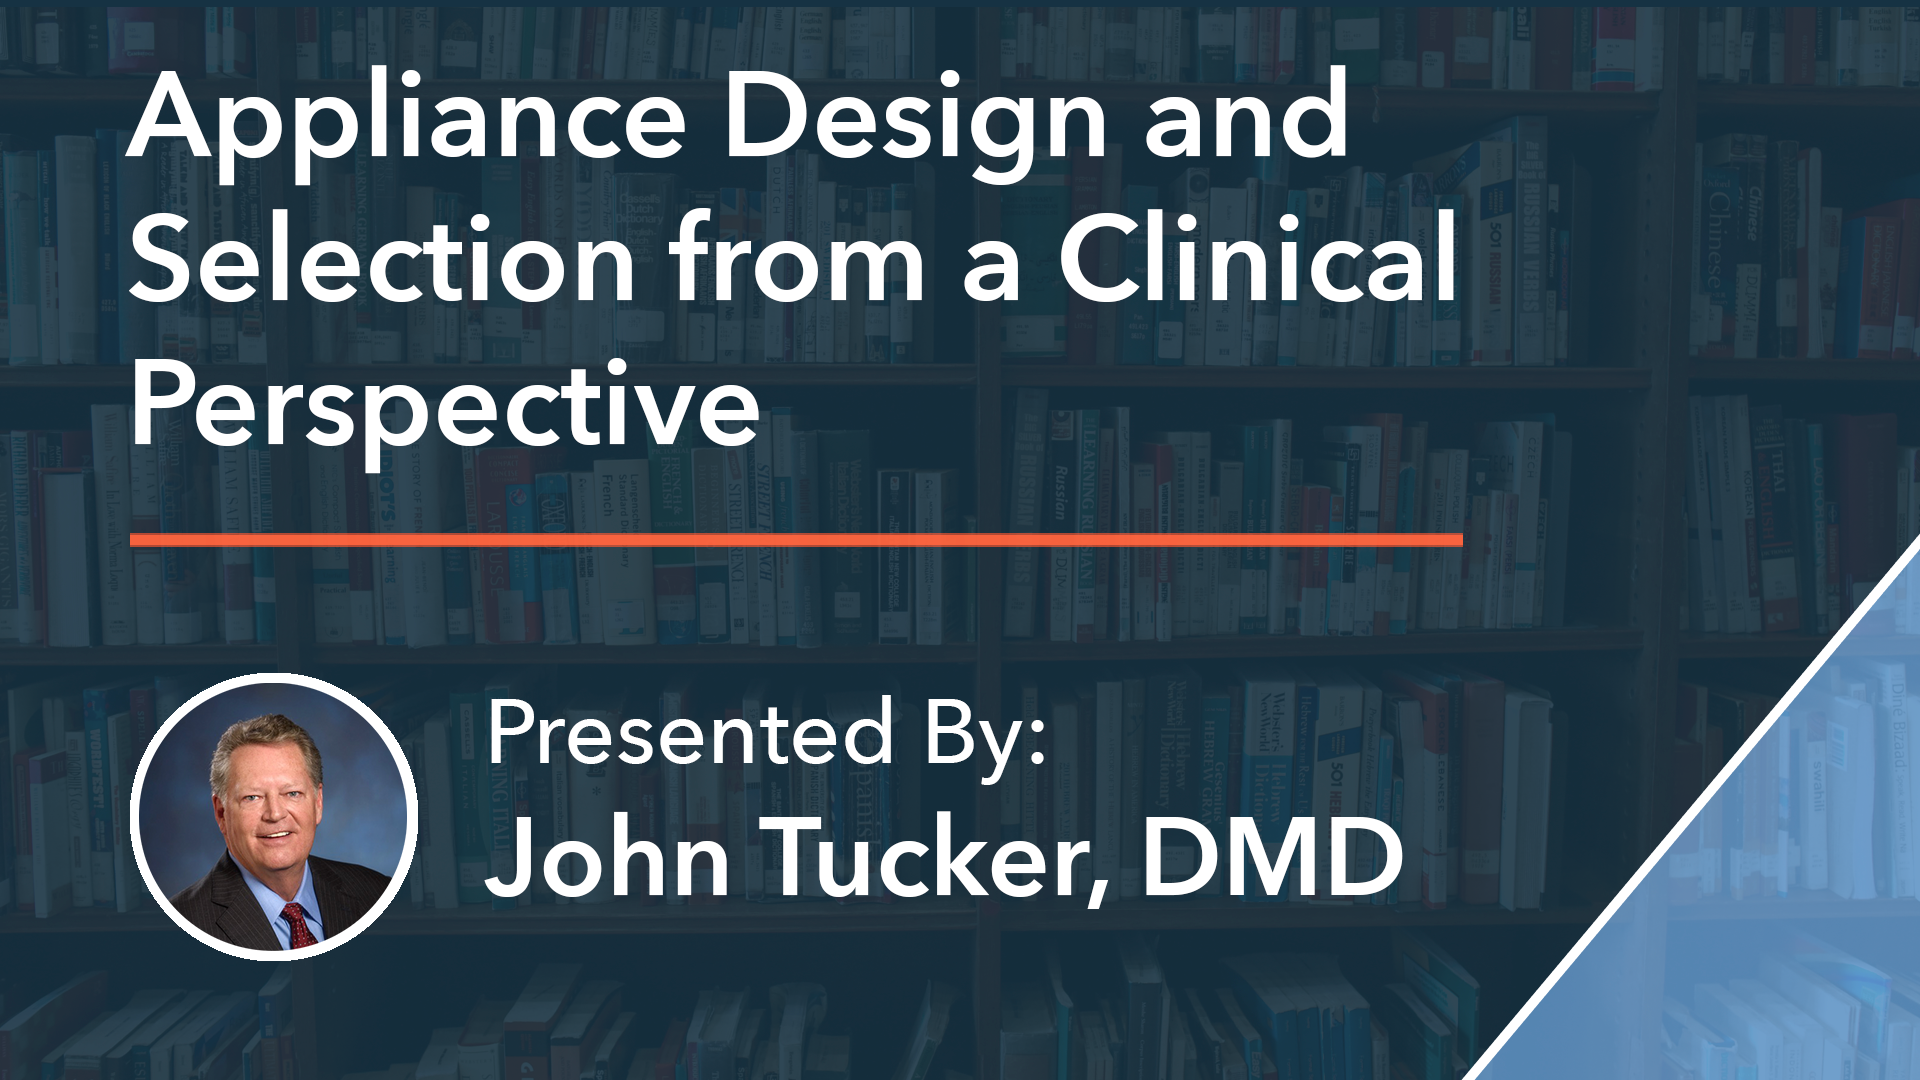 Appliance Design and Selection from a Clinical Perspective Dr John Tucker